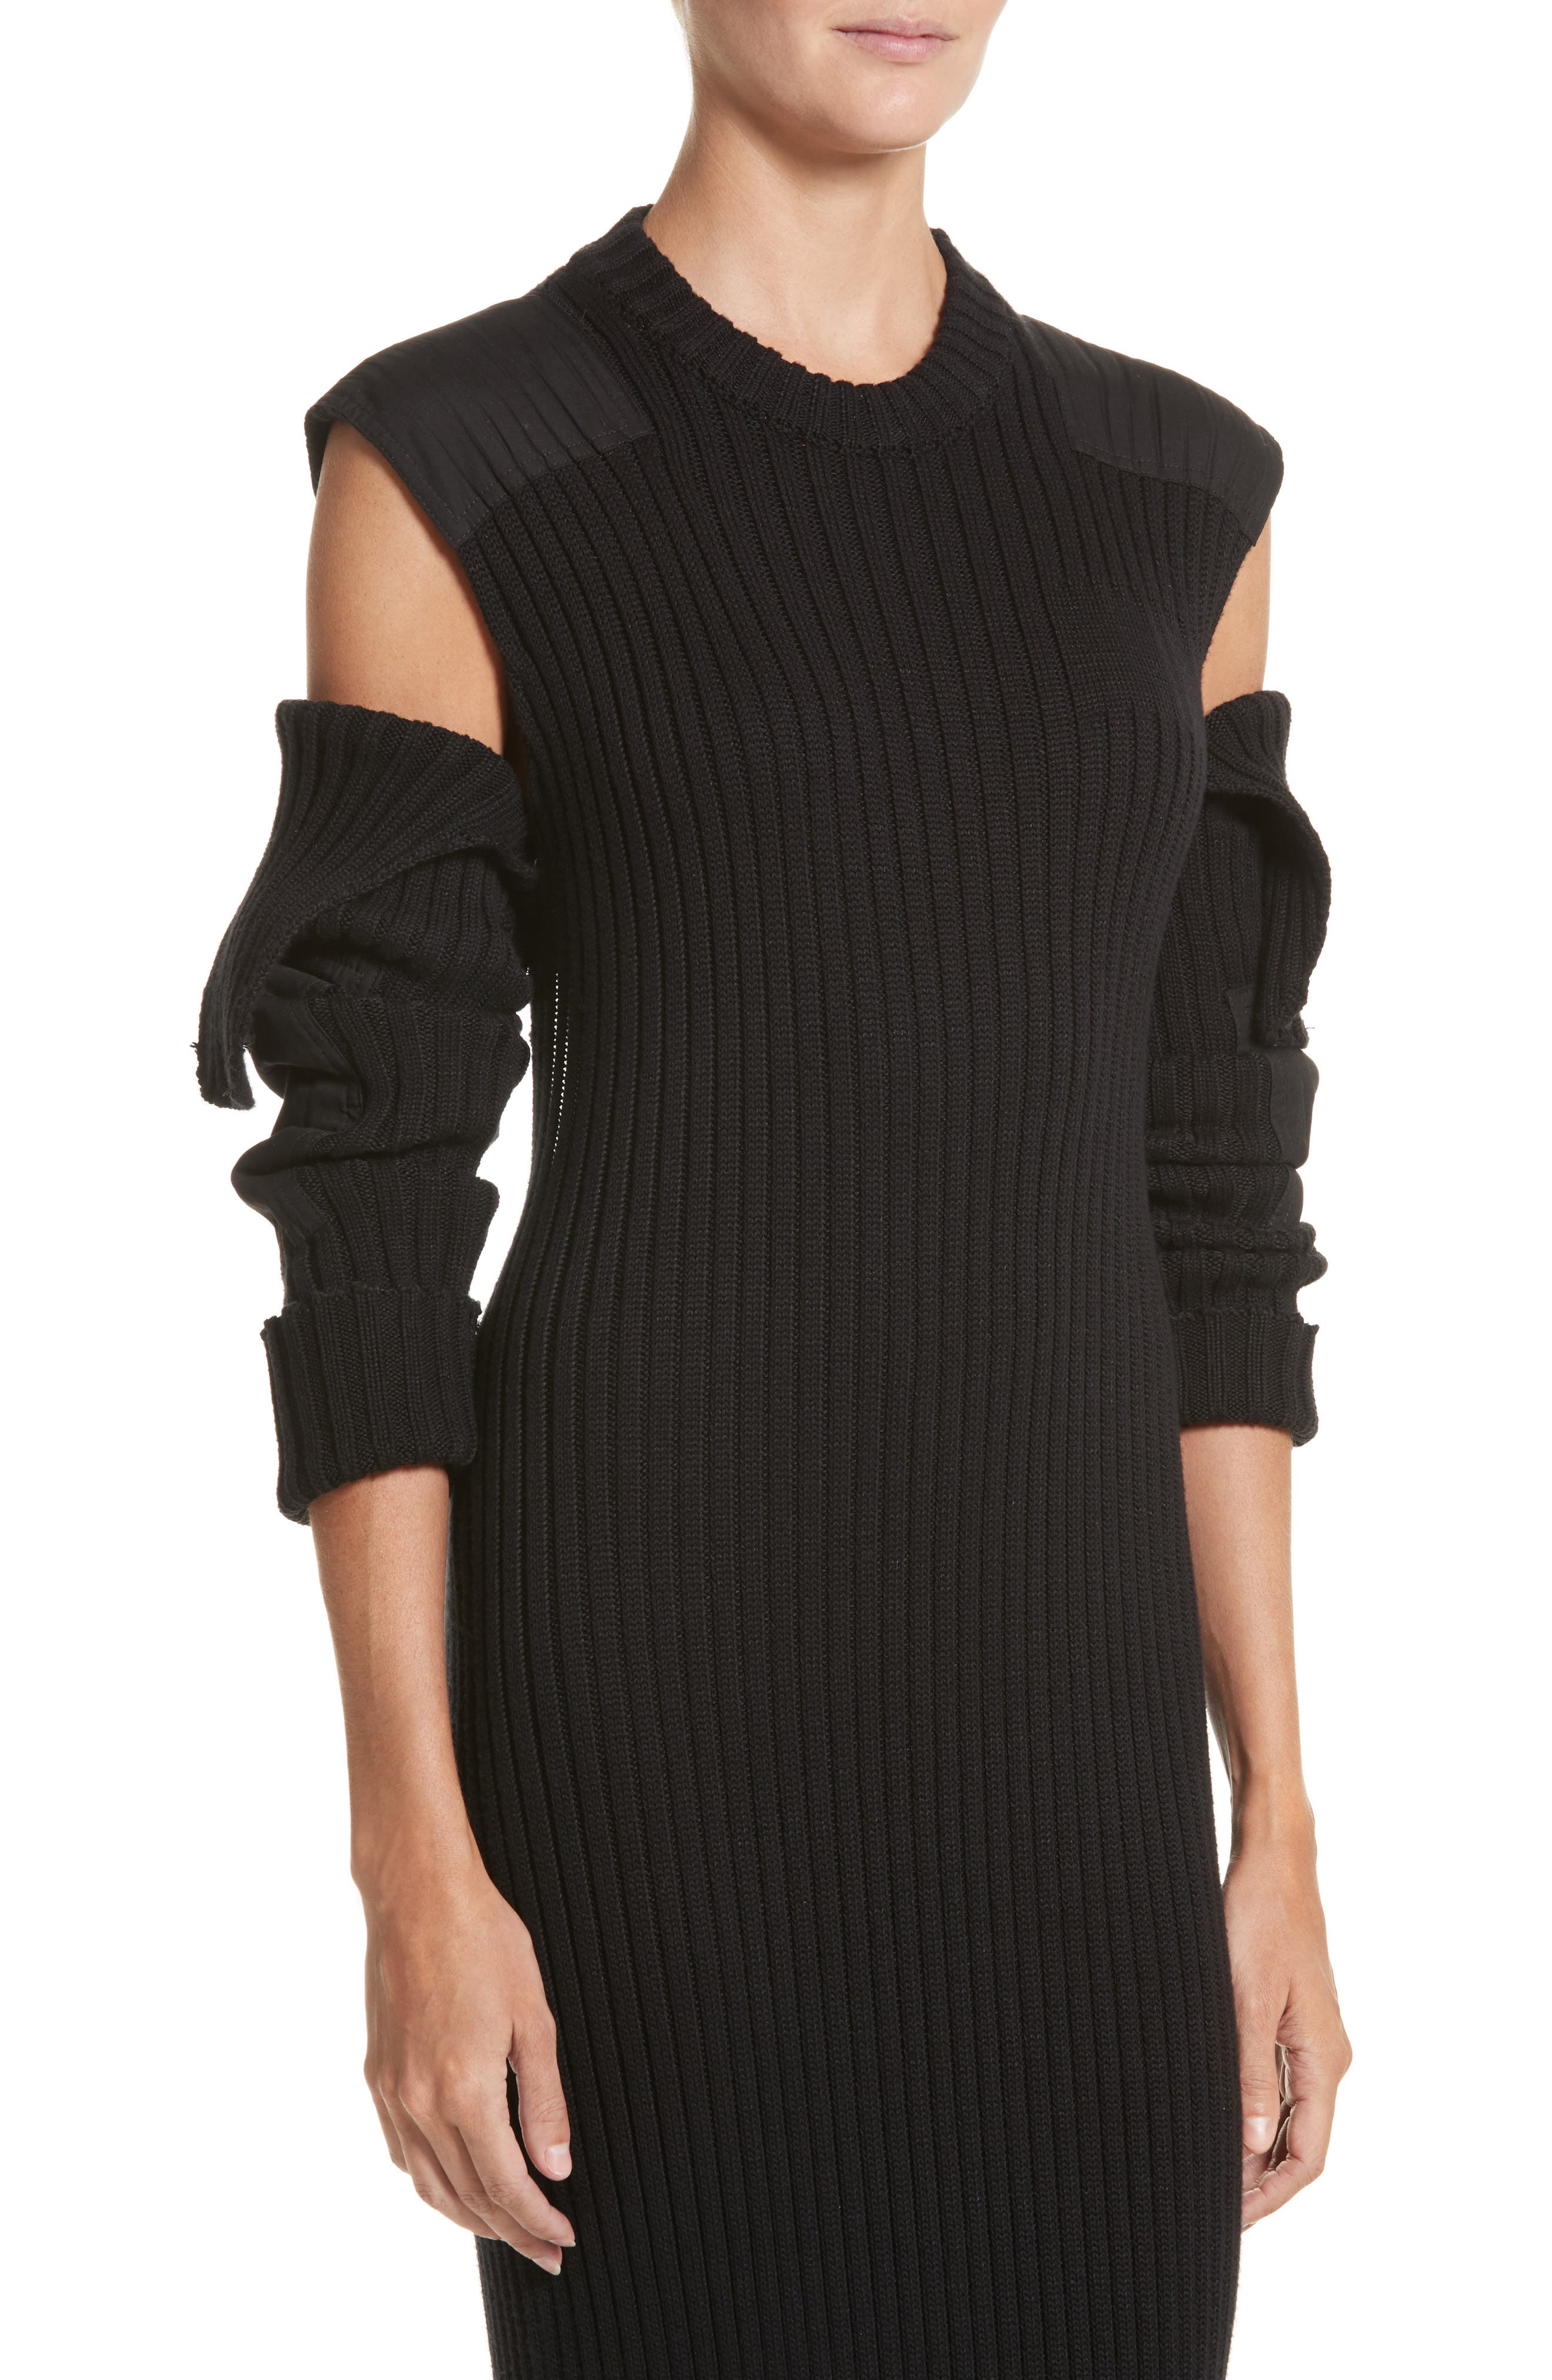 Rib Knit Cold Shoulder Dress,                             Alternate thumbnail 4, color,                             001